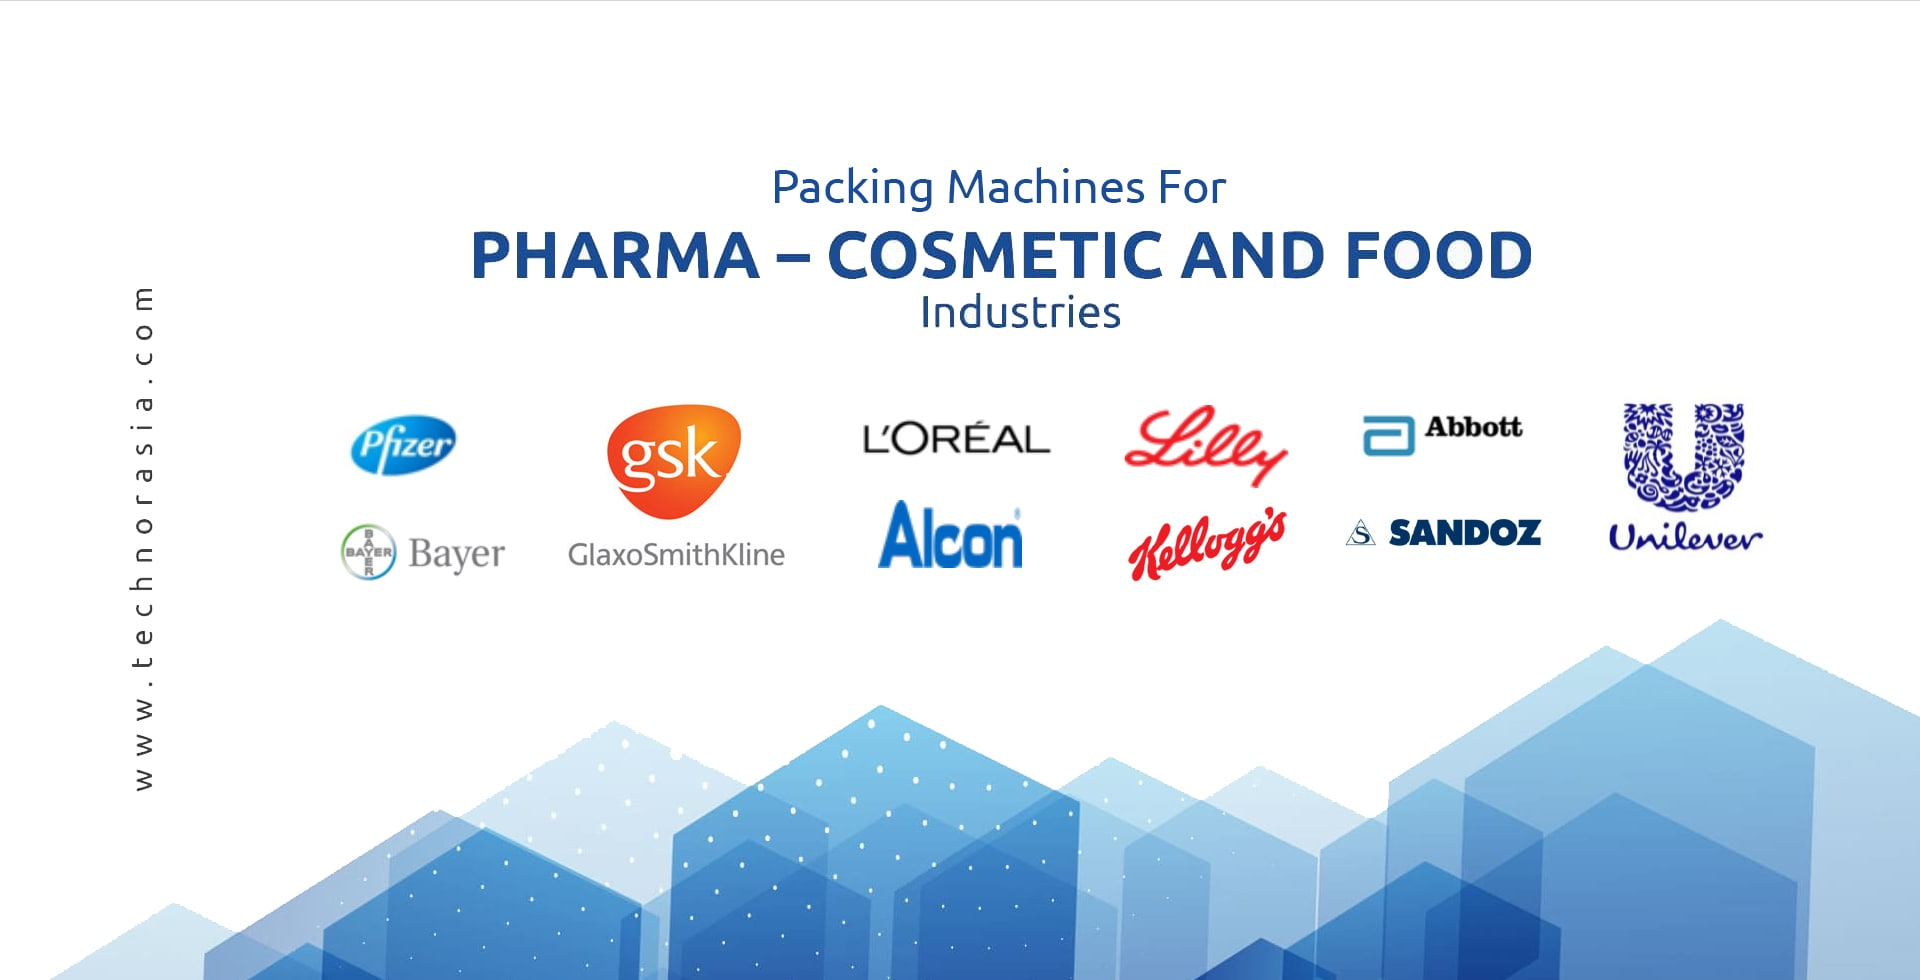 Our Family Packers for Pharma – cosmetic and food industries